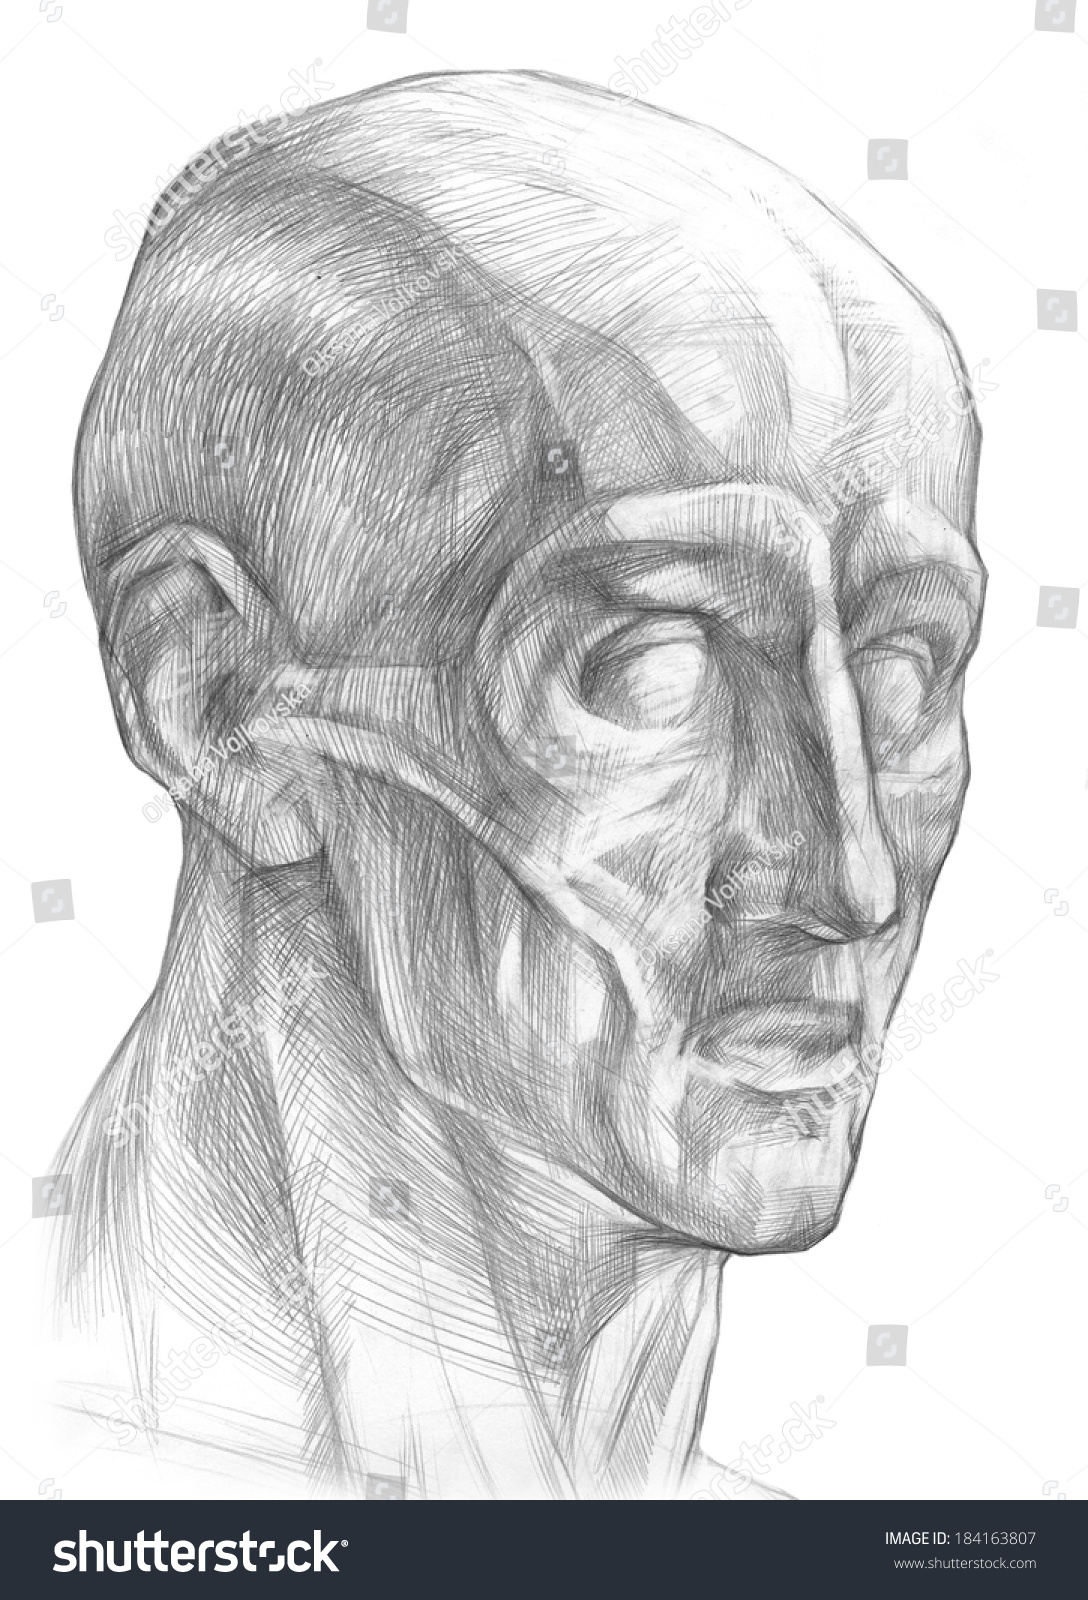 Royalty Free Stock Illustration Of Muscles Human Head Without Skin